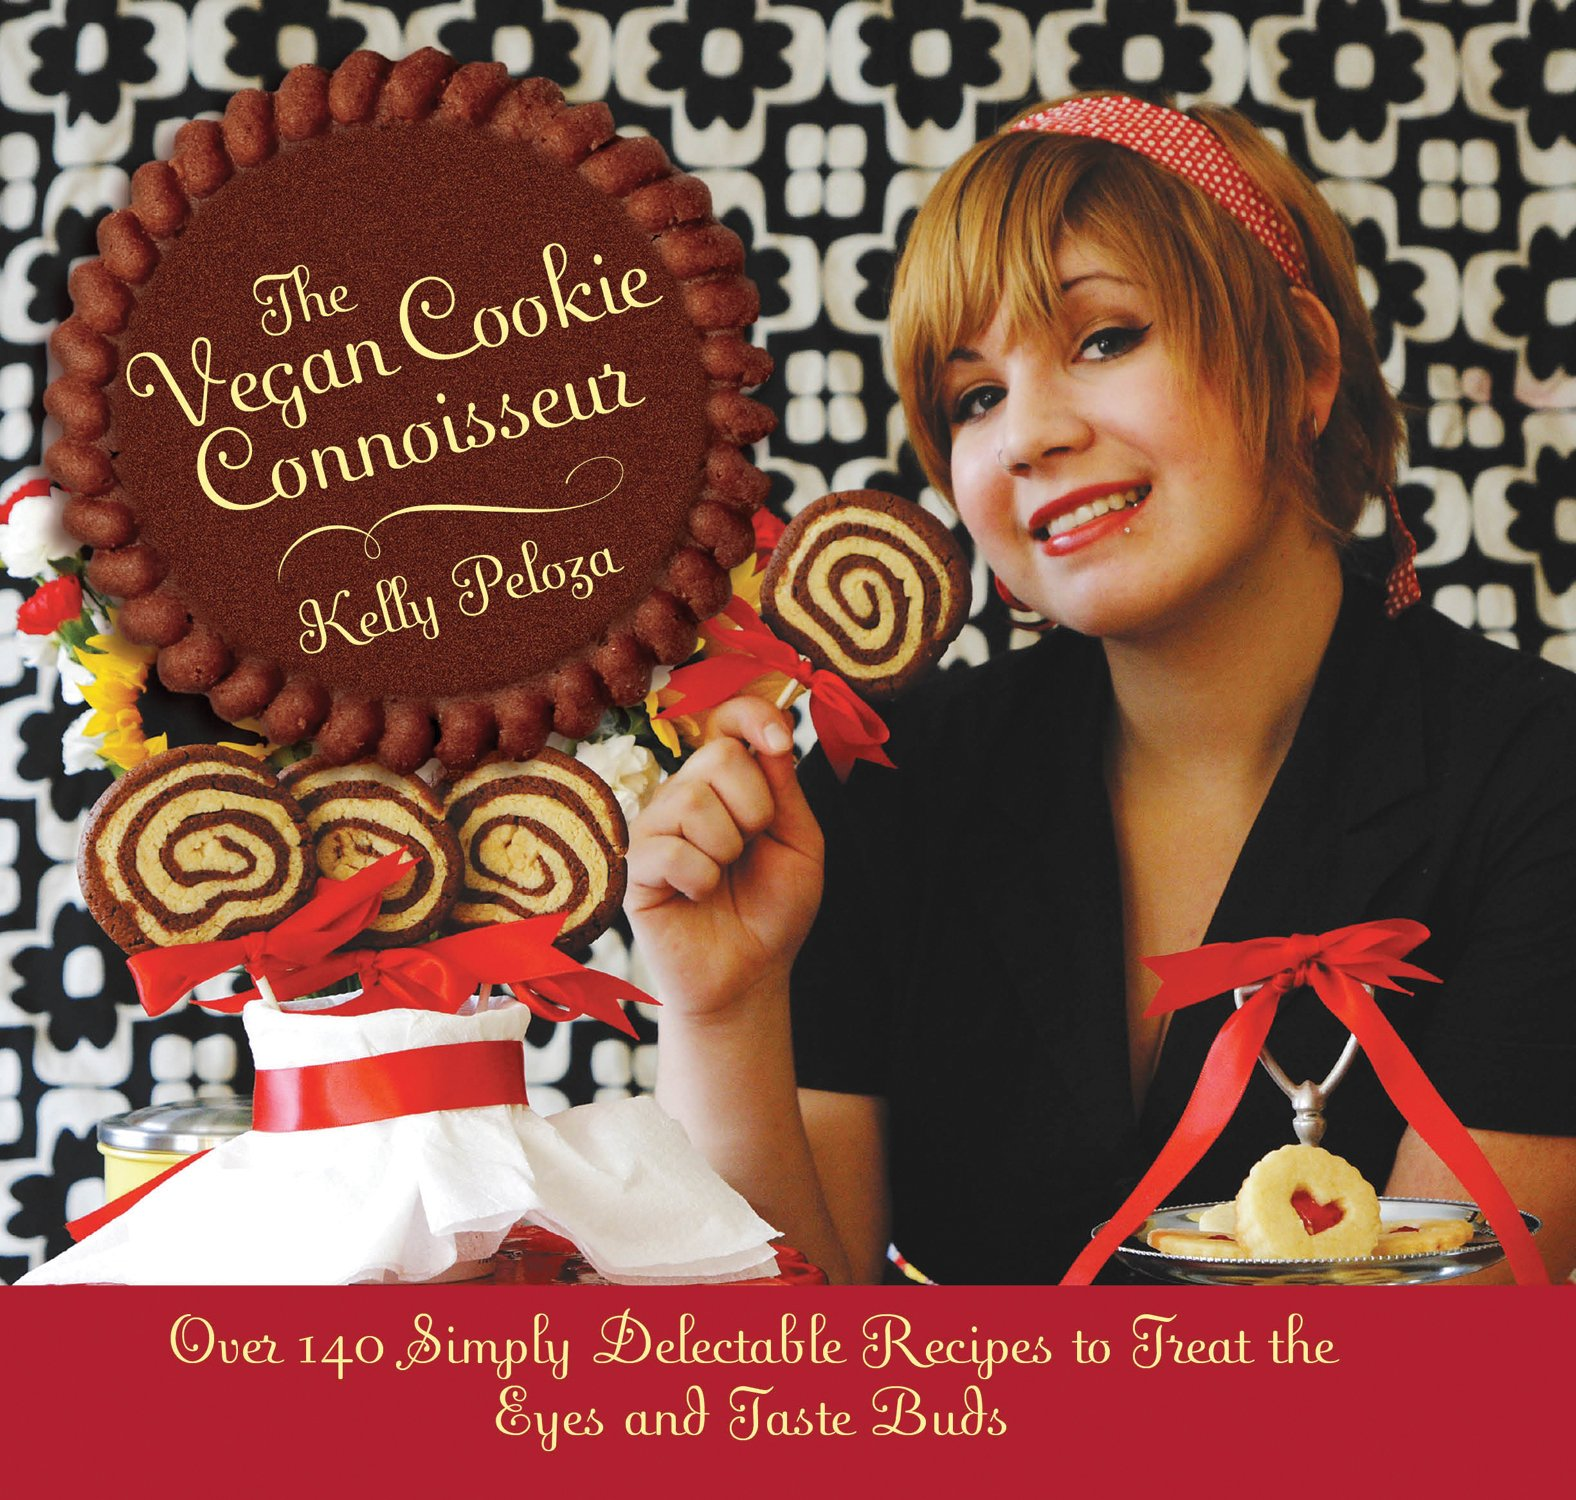 The Vegan Cookie Connoisseur: Over 140 Simply Delicious Recipes That Treat the Eyes and Taste Buds pdf epub